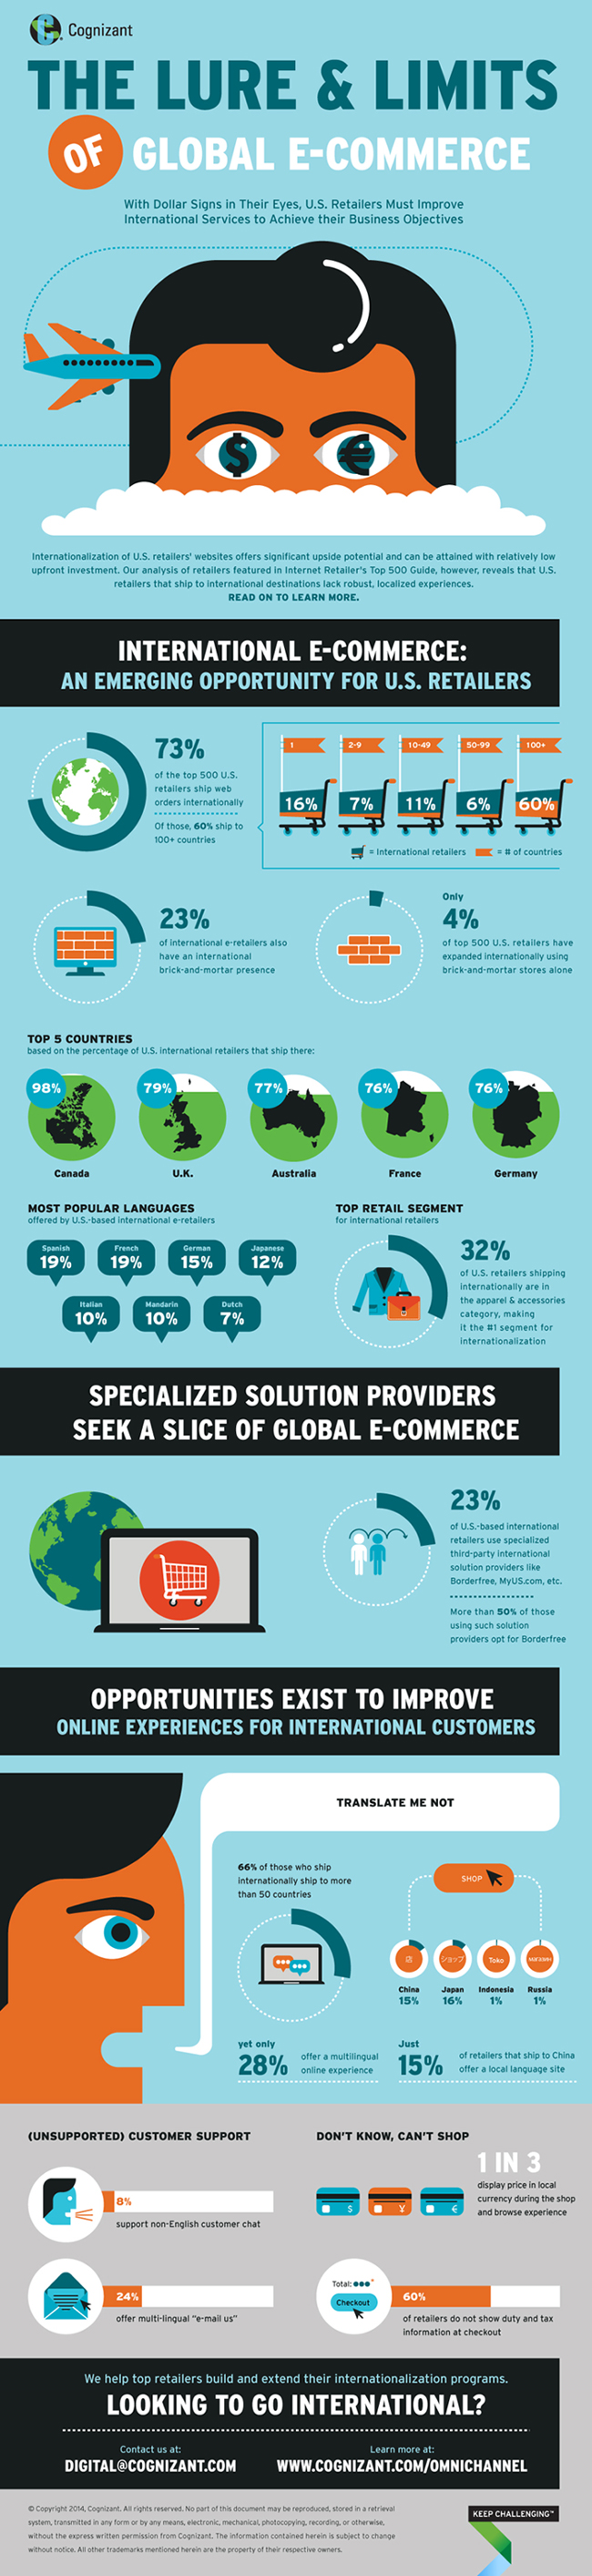 2014 RETAIL SHOPPER EXPERIENCE STUDY 3